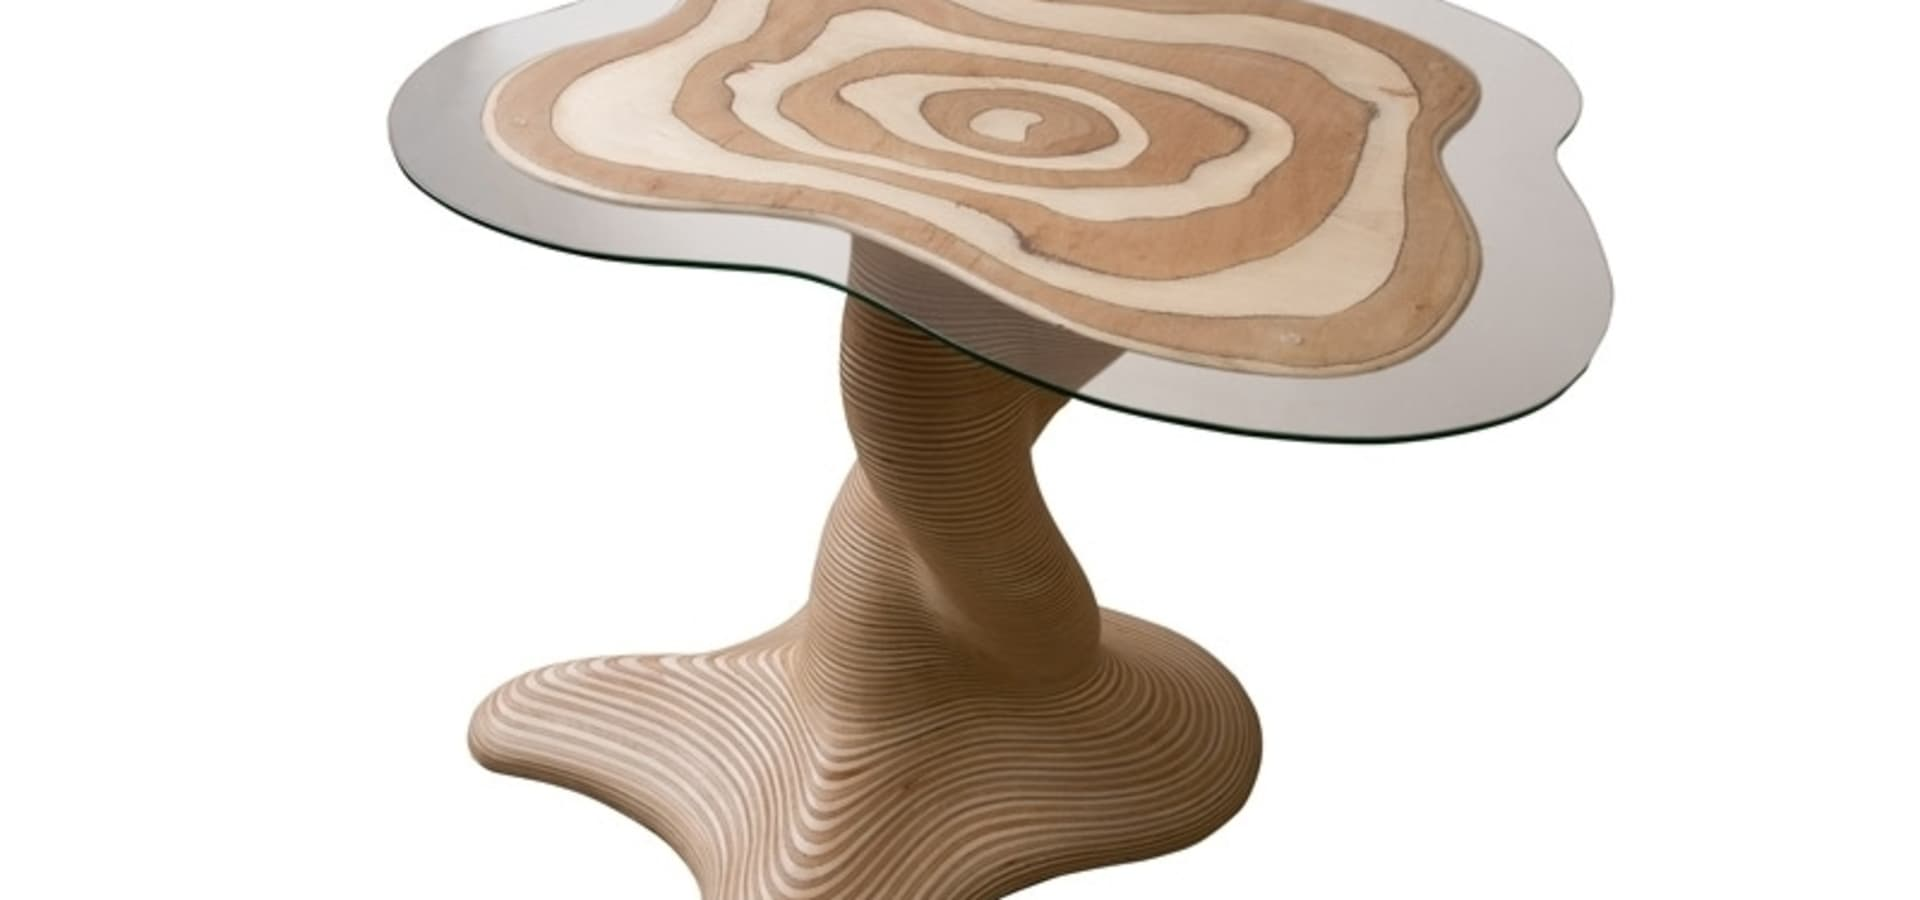 Meubles sculpt s de christina jekey homify for Table vue de haut